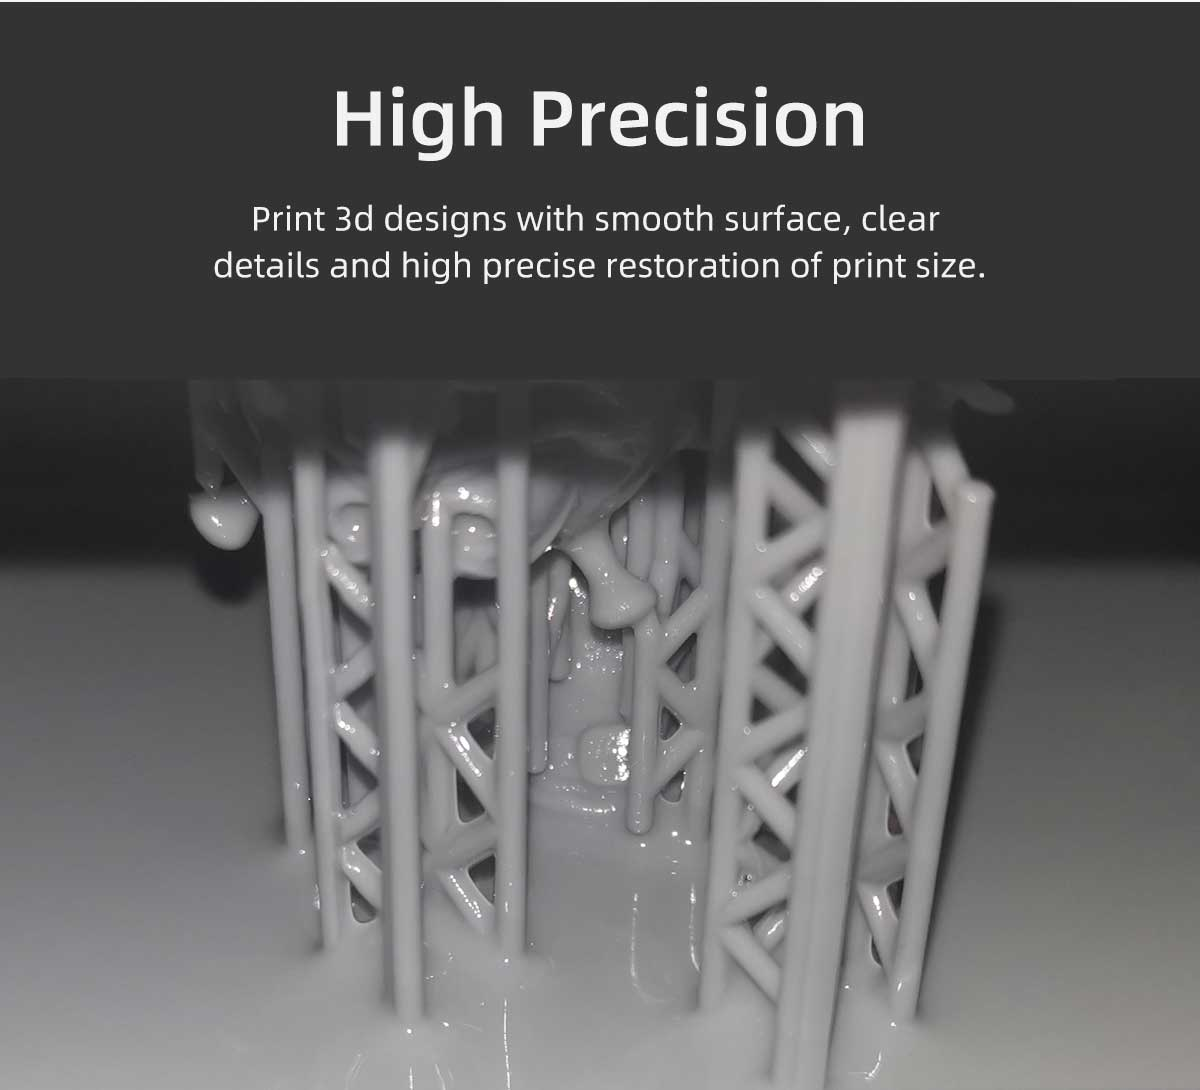 resin for high precision 3d prints | Voxelab